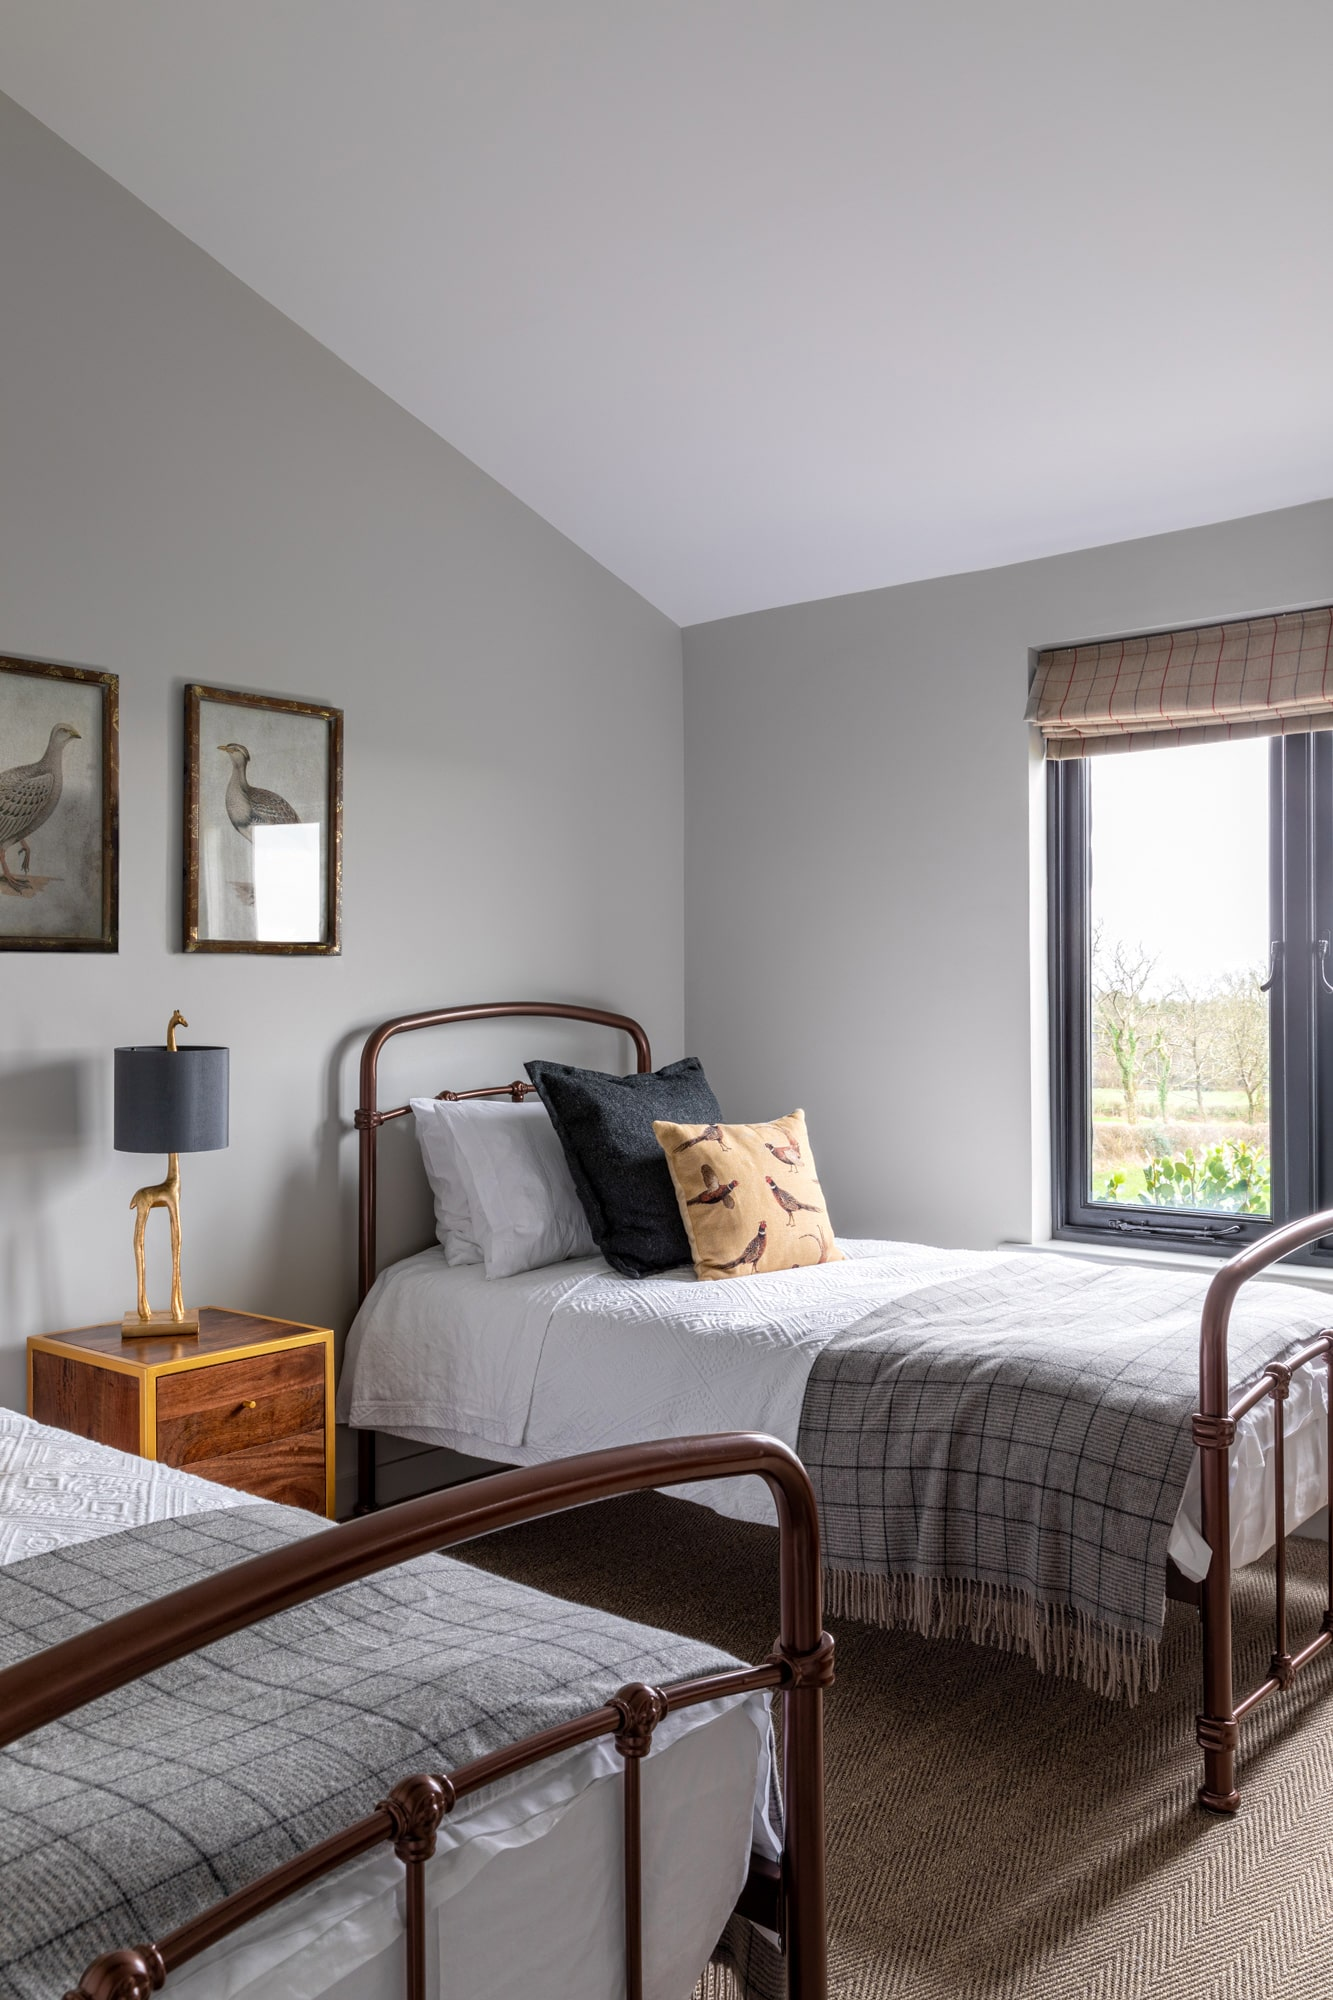 Kids' bedroom: grey walls; 2 single beds; brown and gold beside table in between beds with a lamp in a form of giraffe